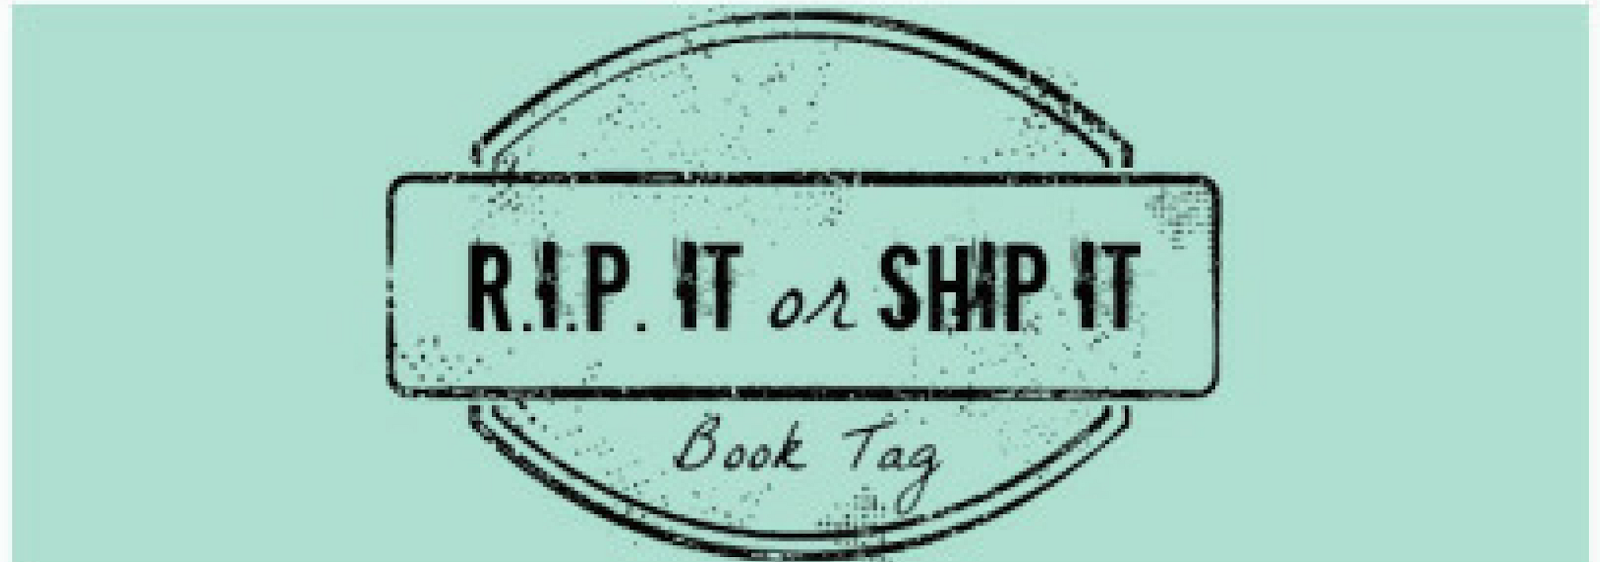 R.I.P. IT or SHIP IT | book tag